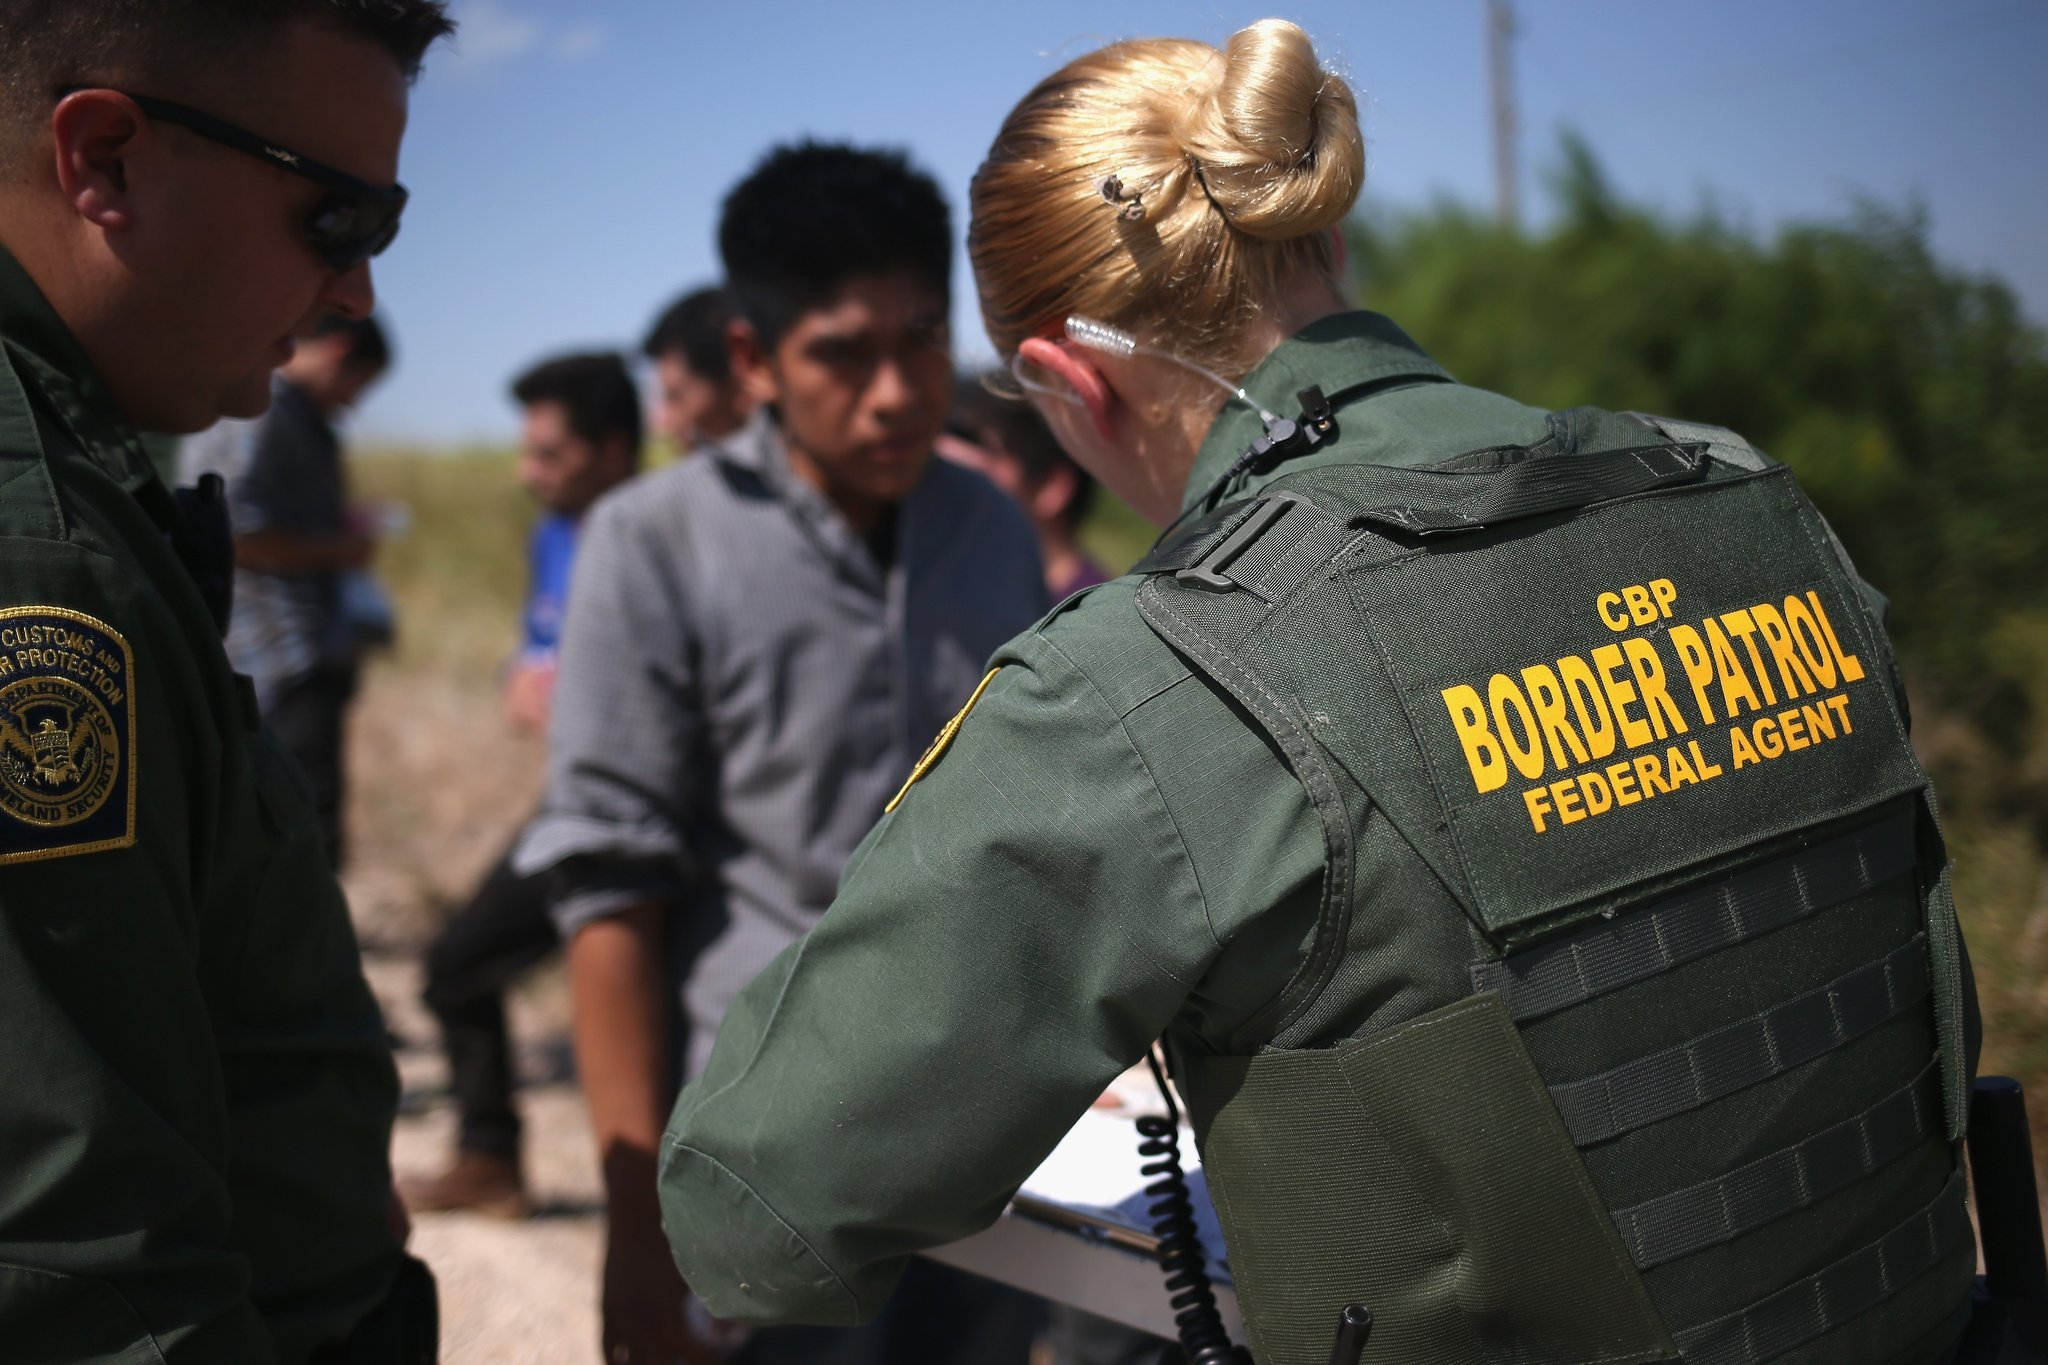 Security of US borders and illegal immigration